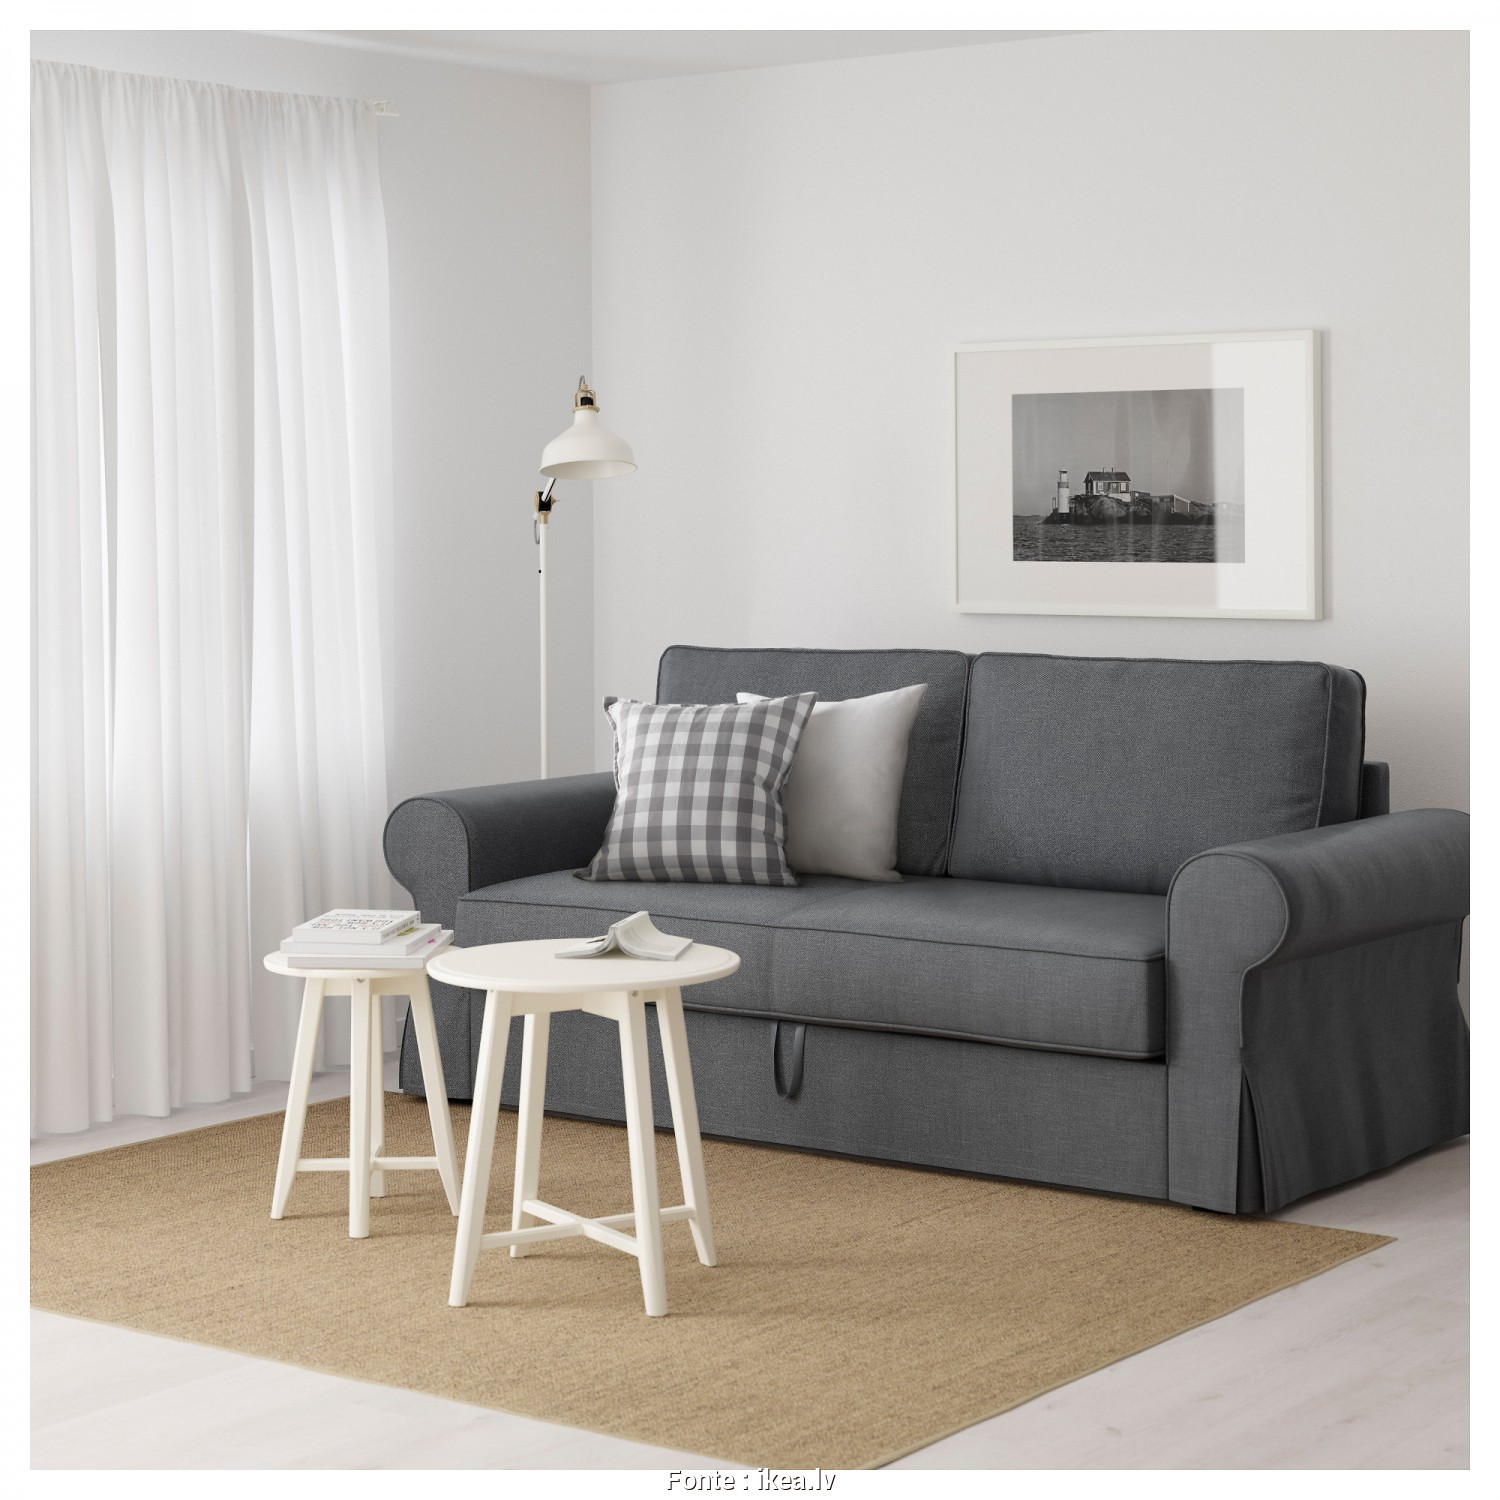 Backabro Ikea Opinie, Classy IKEA Latvia, Shop, Furniture, Lighting, Home Accessories & More